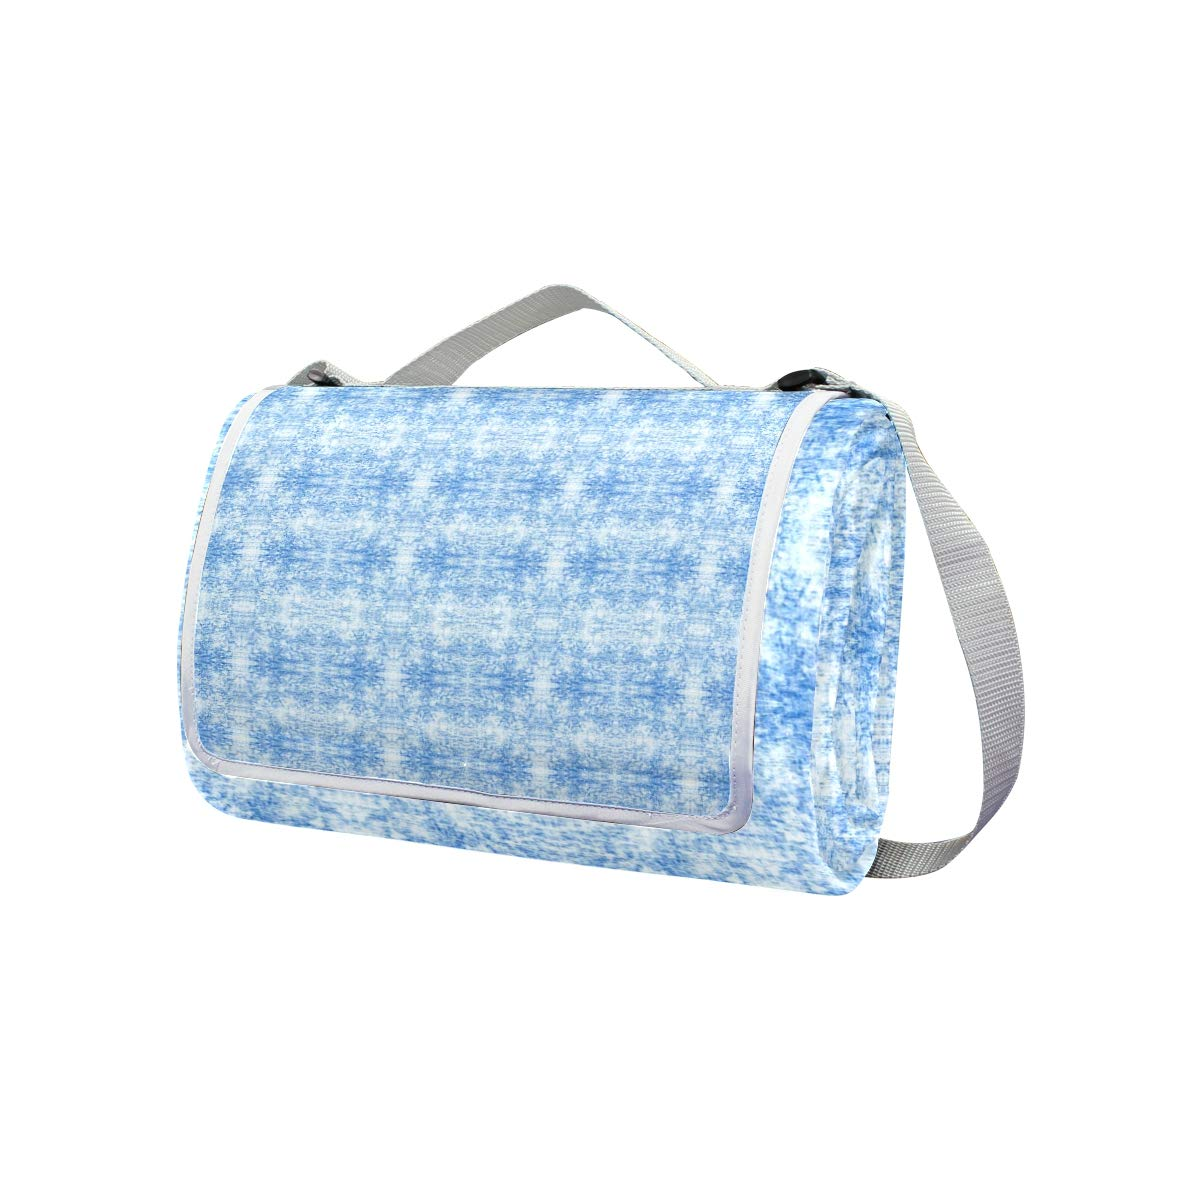 LOIGEIDQ Picnic mat Rchambray Light Waterproof Outdoor Picnic Blanket, Sandproof and Waterproof Picnic Blanket Tote for Camping Hiking Grass Travelling DualLayers by LOIGEIDQ (Image #2)